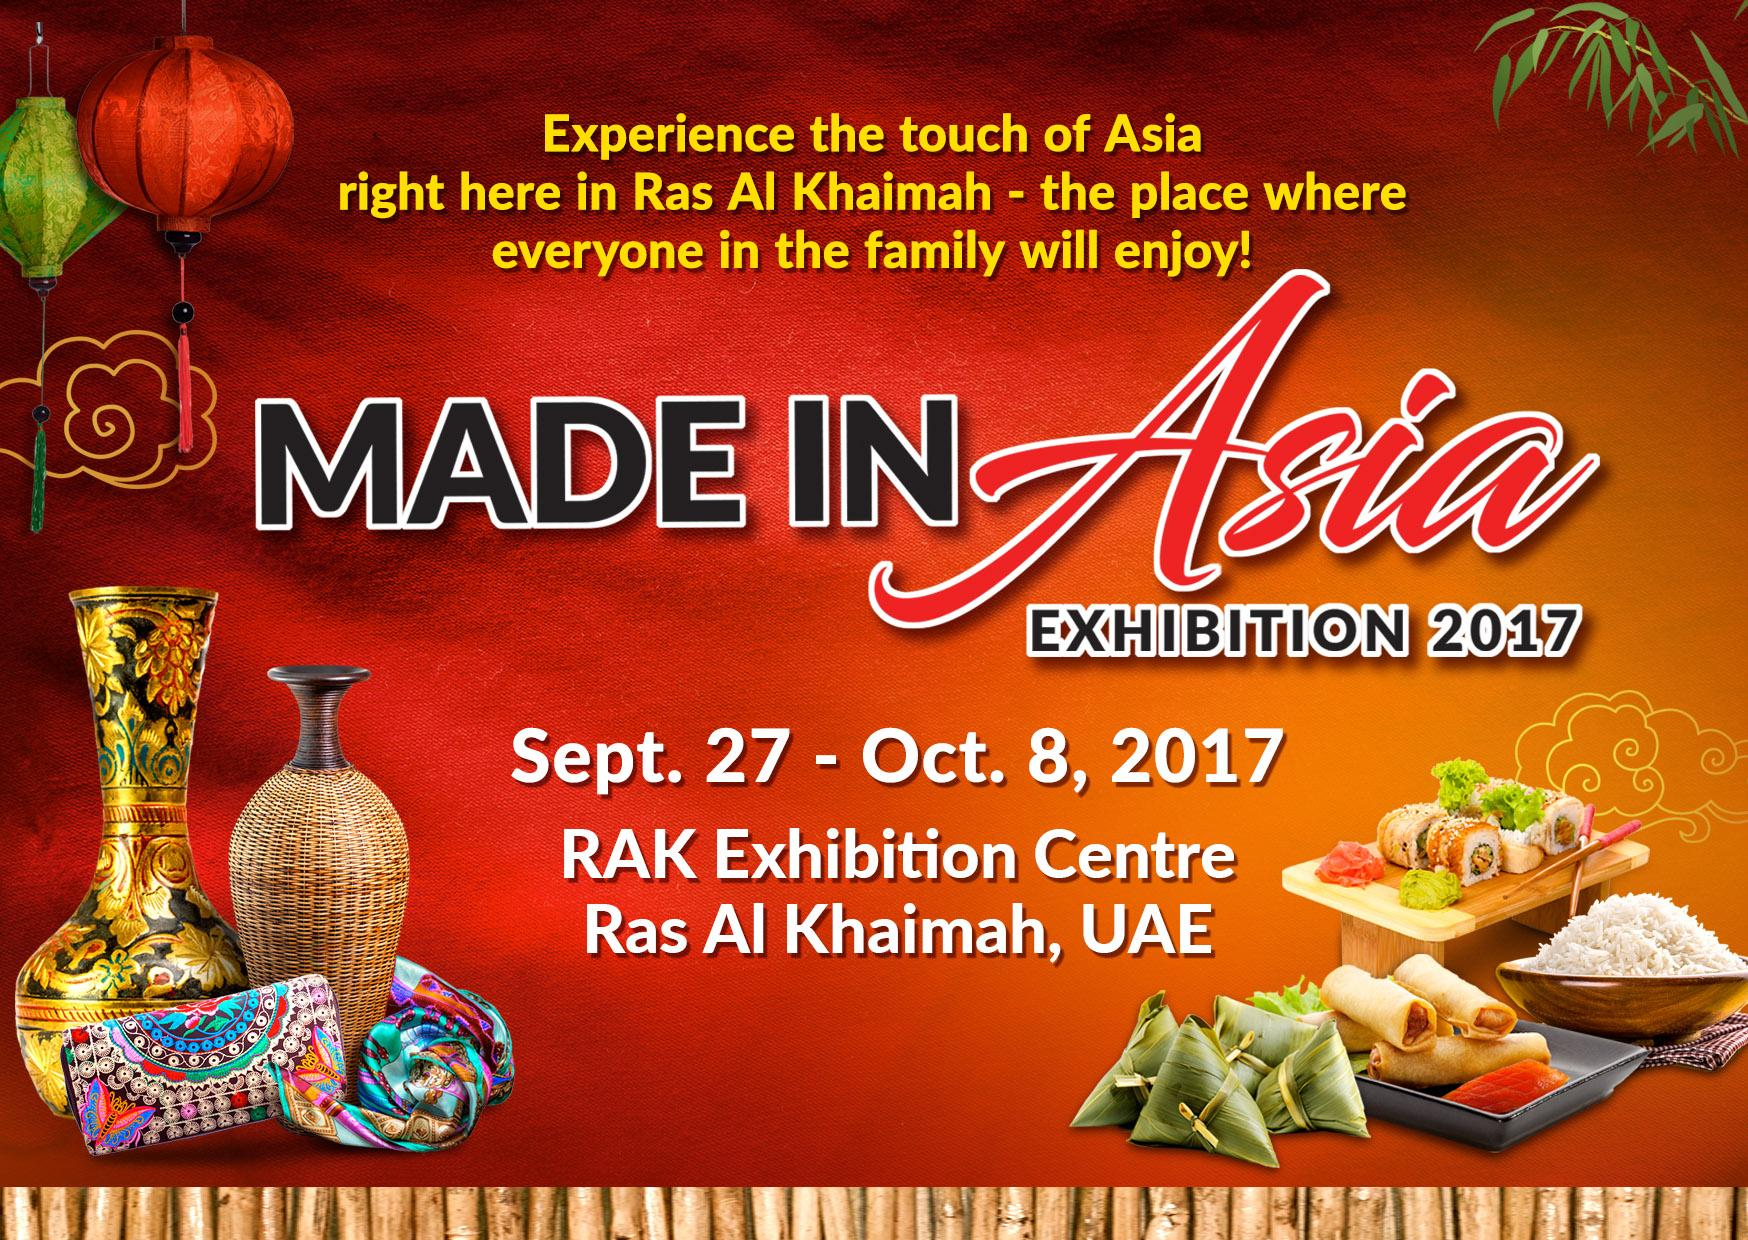 MADE IN ASIA EXHIBITION 2017